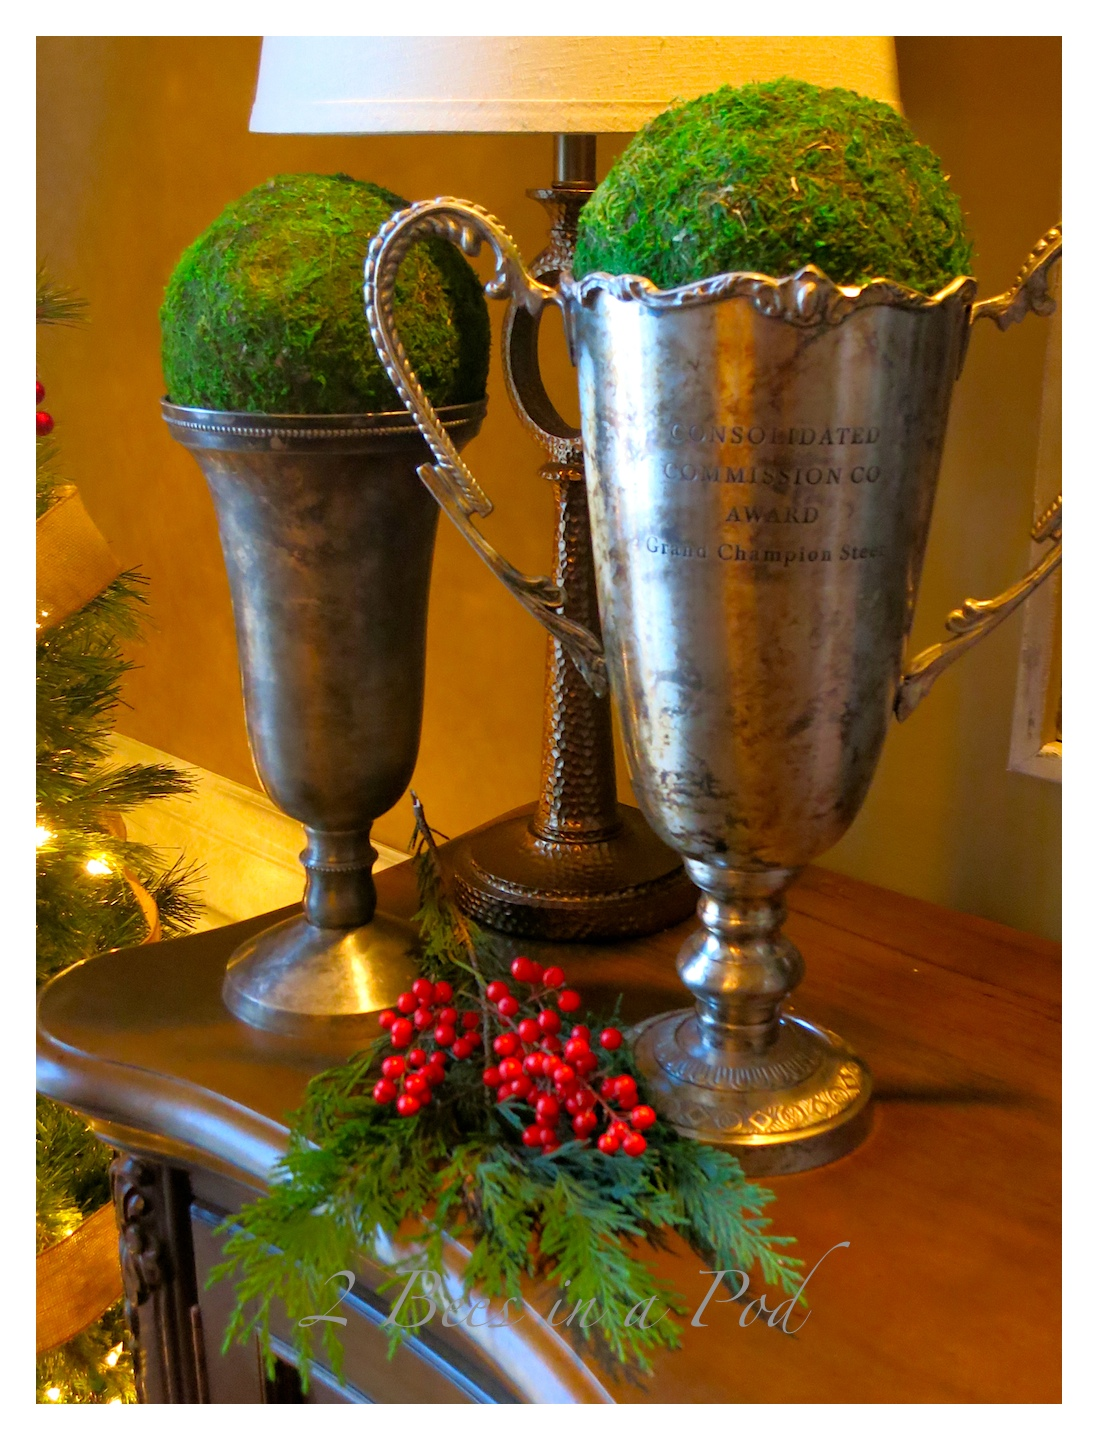 I really like the vintage trophies - their patina is great.Rustic Christmas - I love the crusty, rusty, chippy and warmth that rustic elements bring to my home for Christmas!